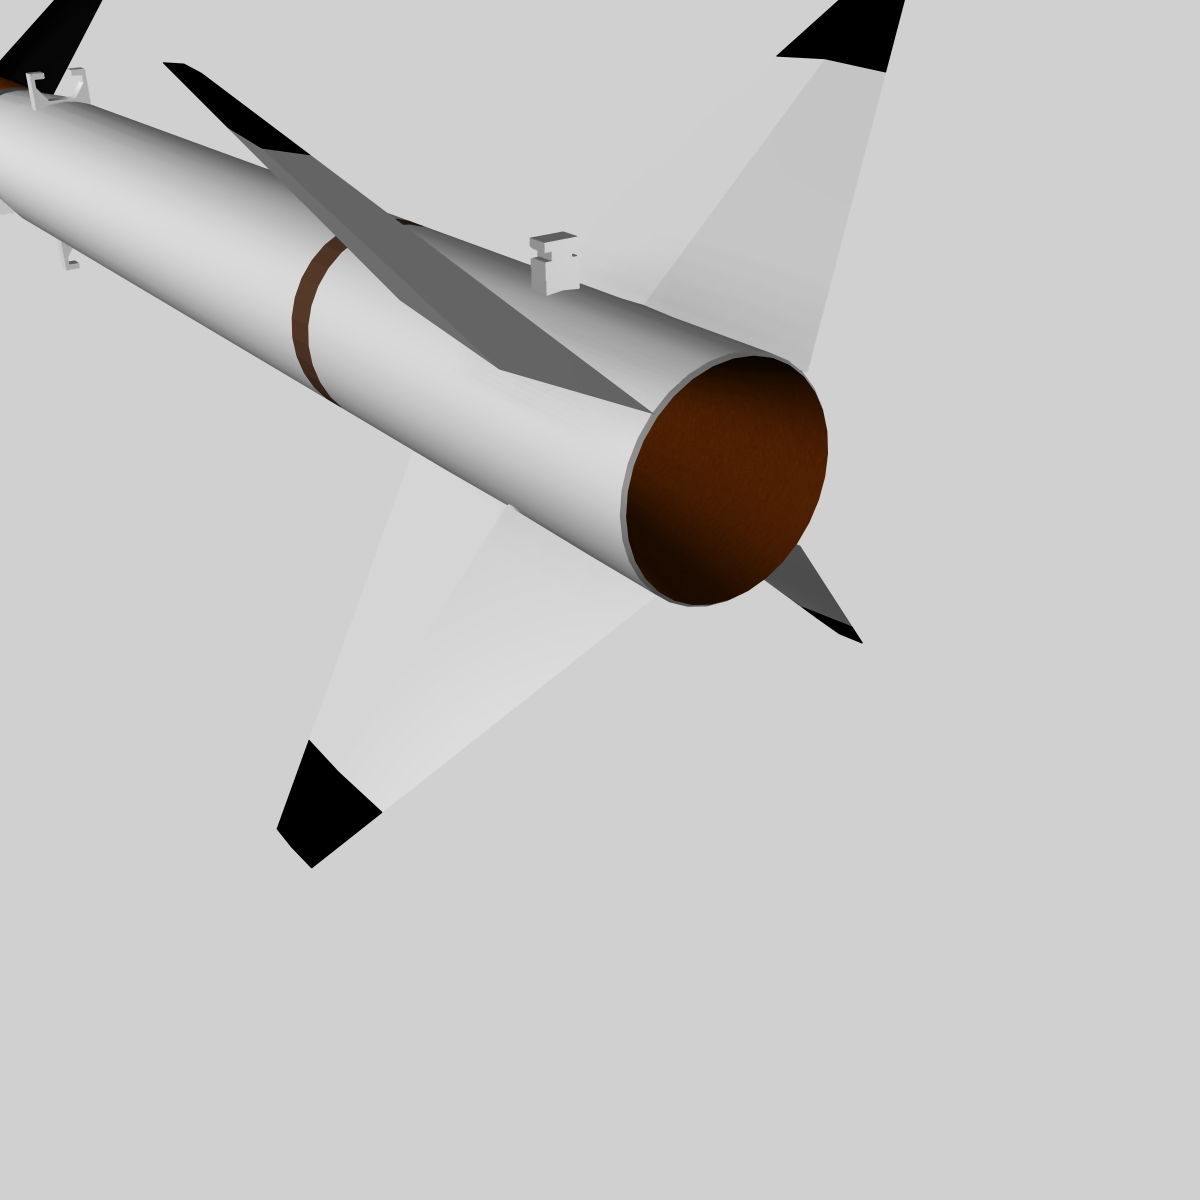 us terrier-nike missile 3d model 3ds dxf cob x obj 140336